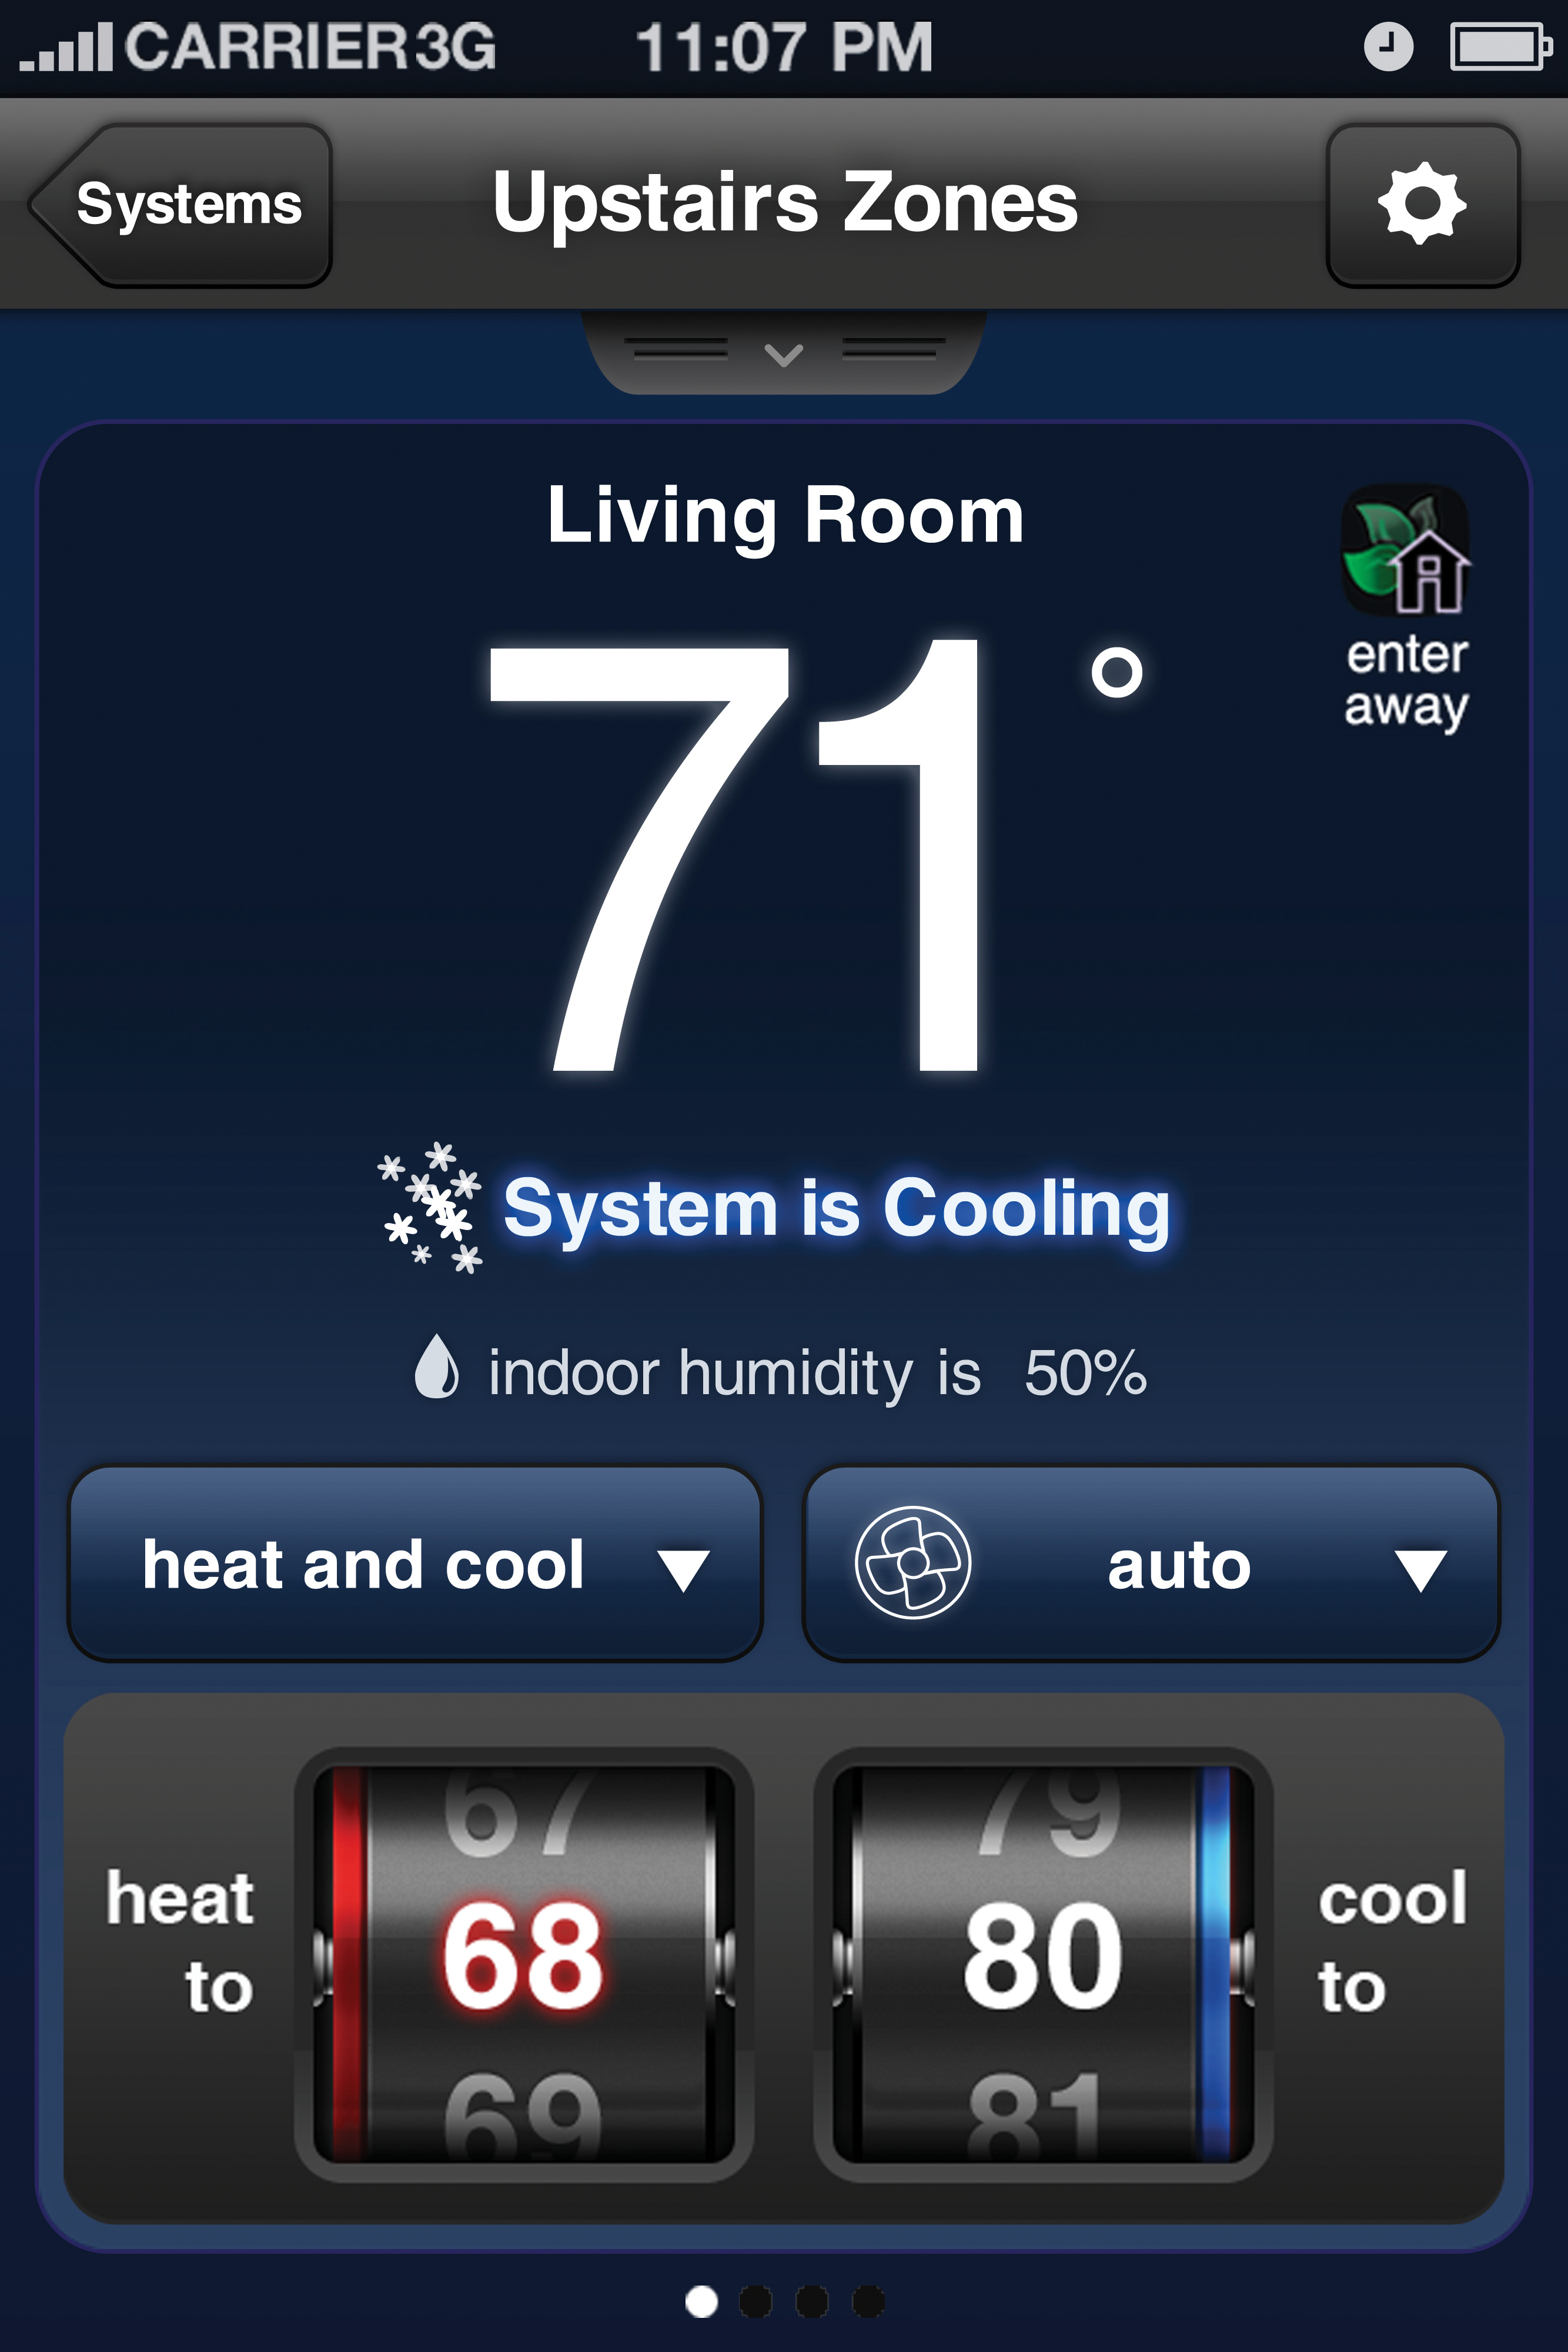 Energy use management apps, like Nest and iComfort, can help consumers monitor their energy use.